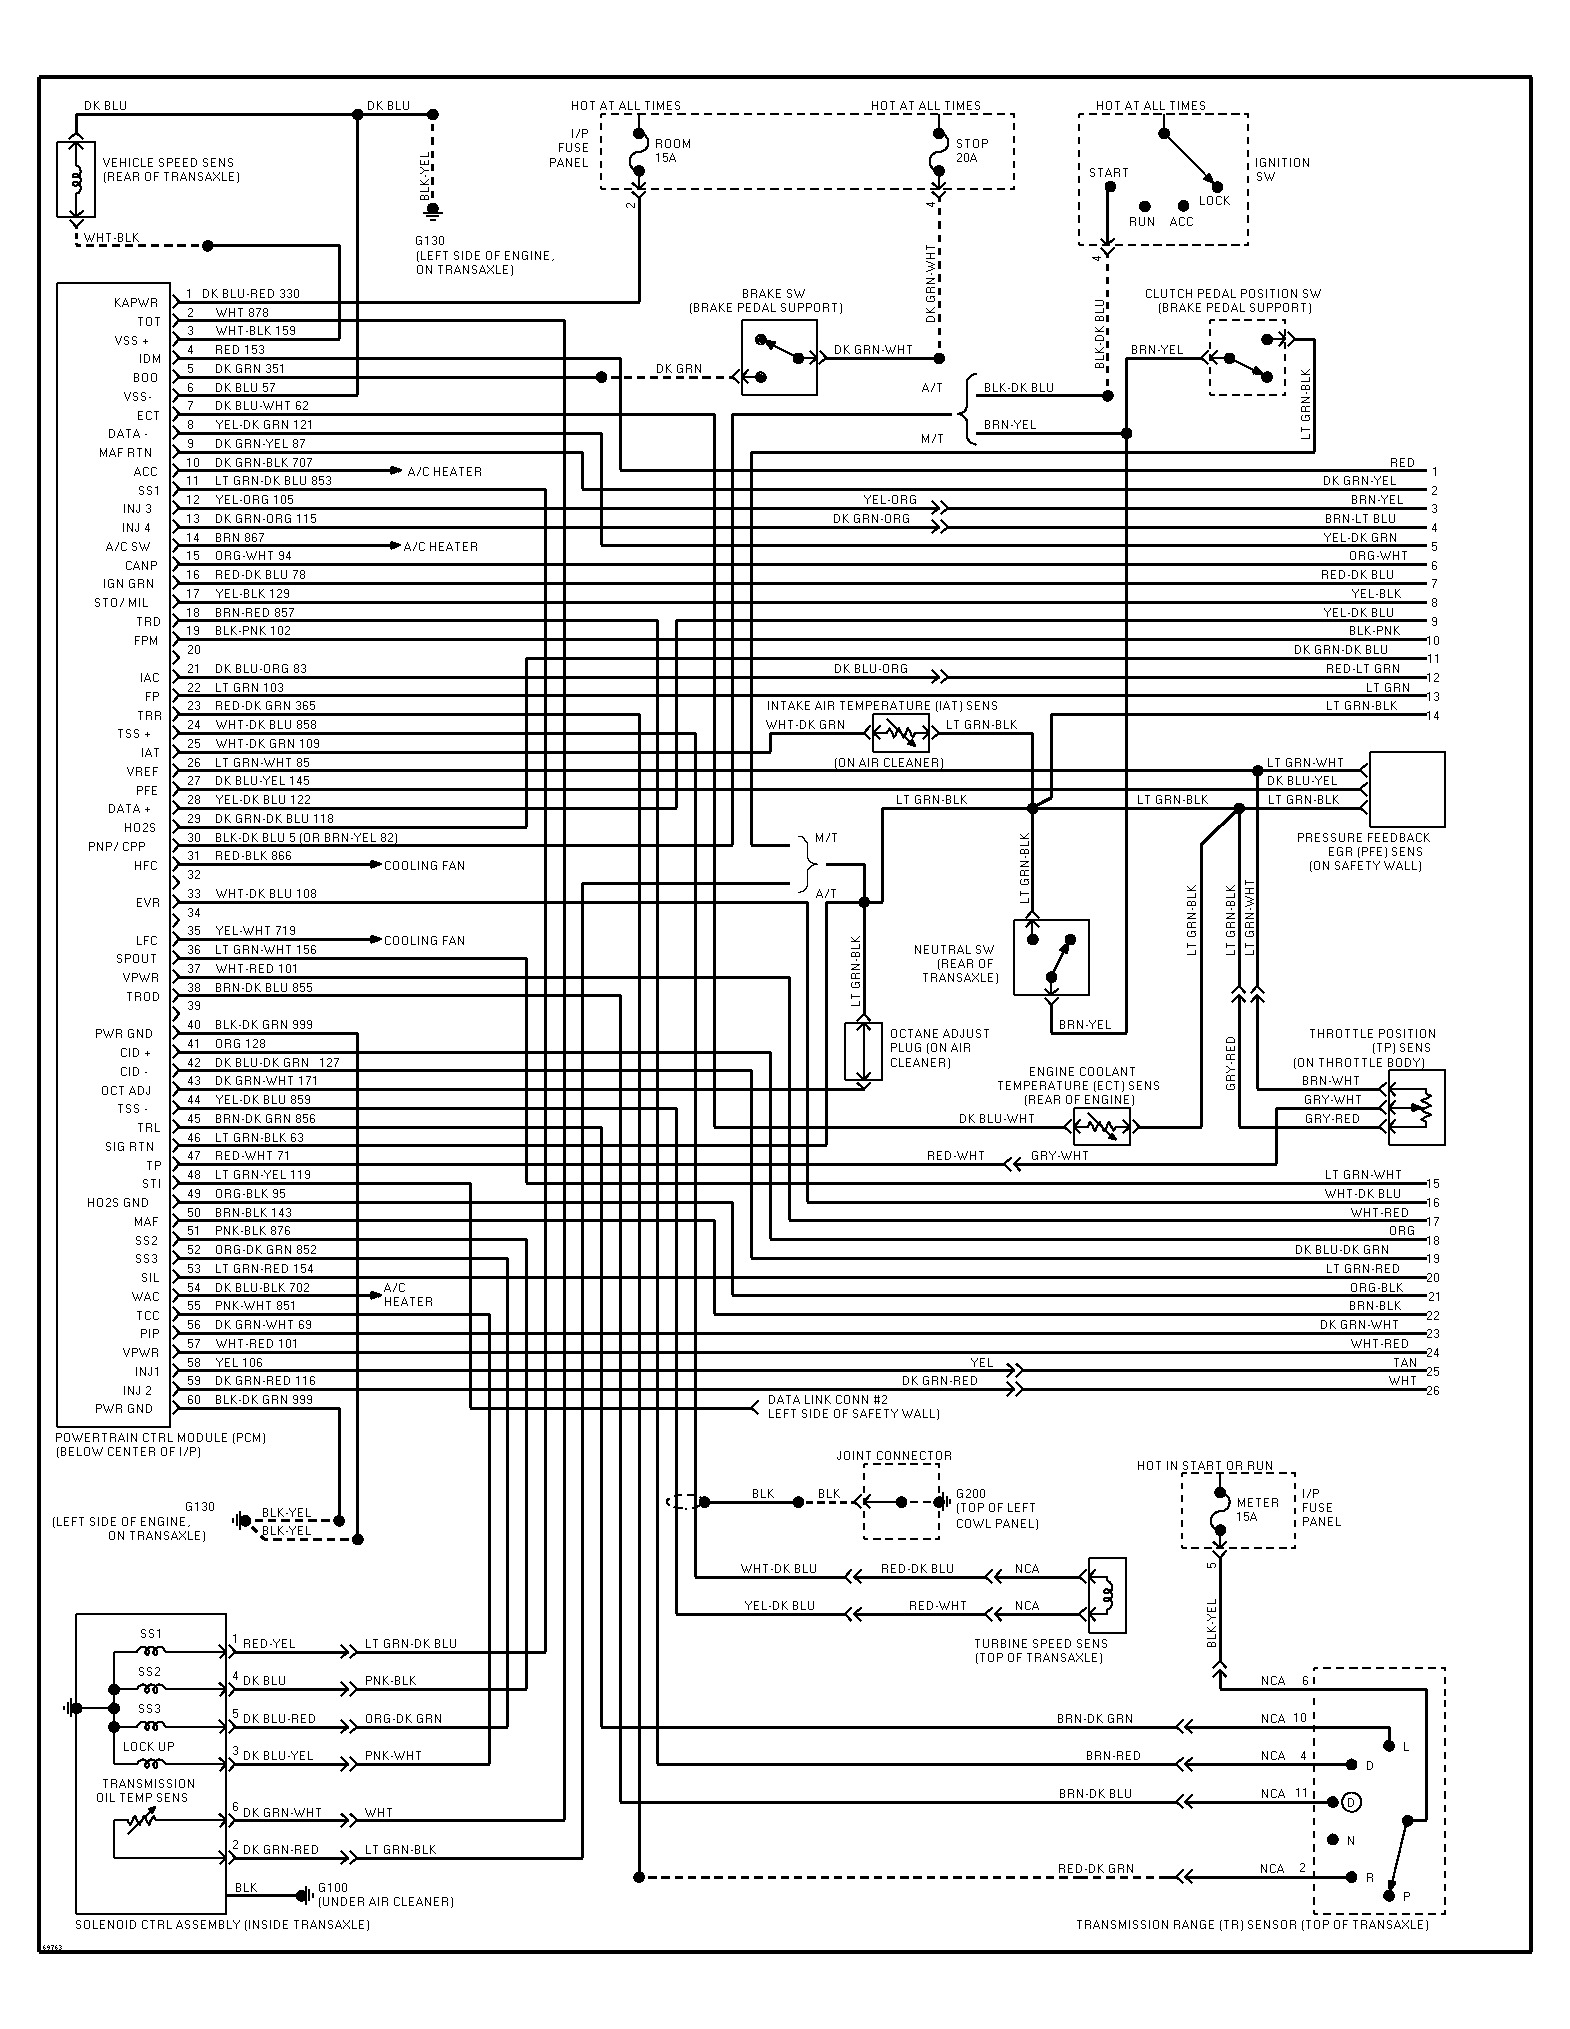 original 1995 ford escort wiring diagram i need to find a color coded 1998 ford escort wiring diagram at suagrazia.org